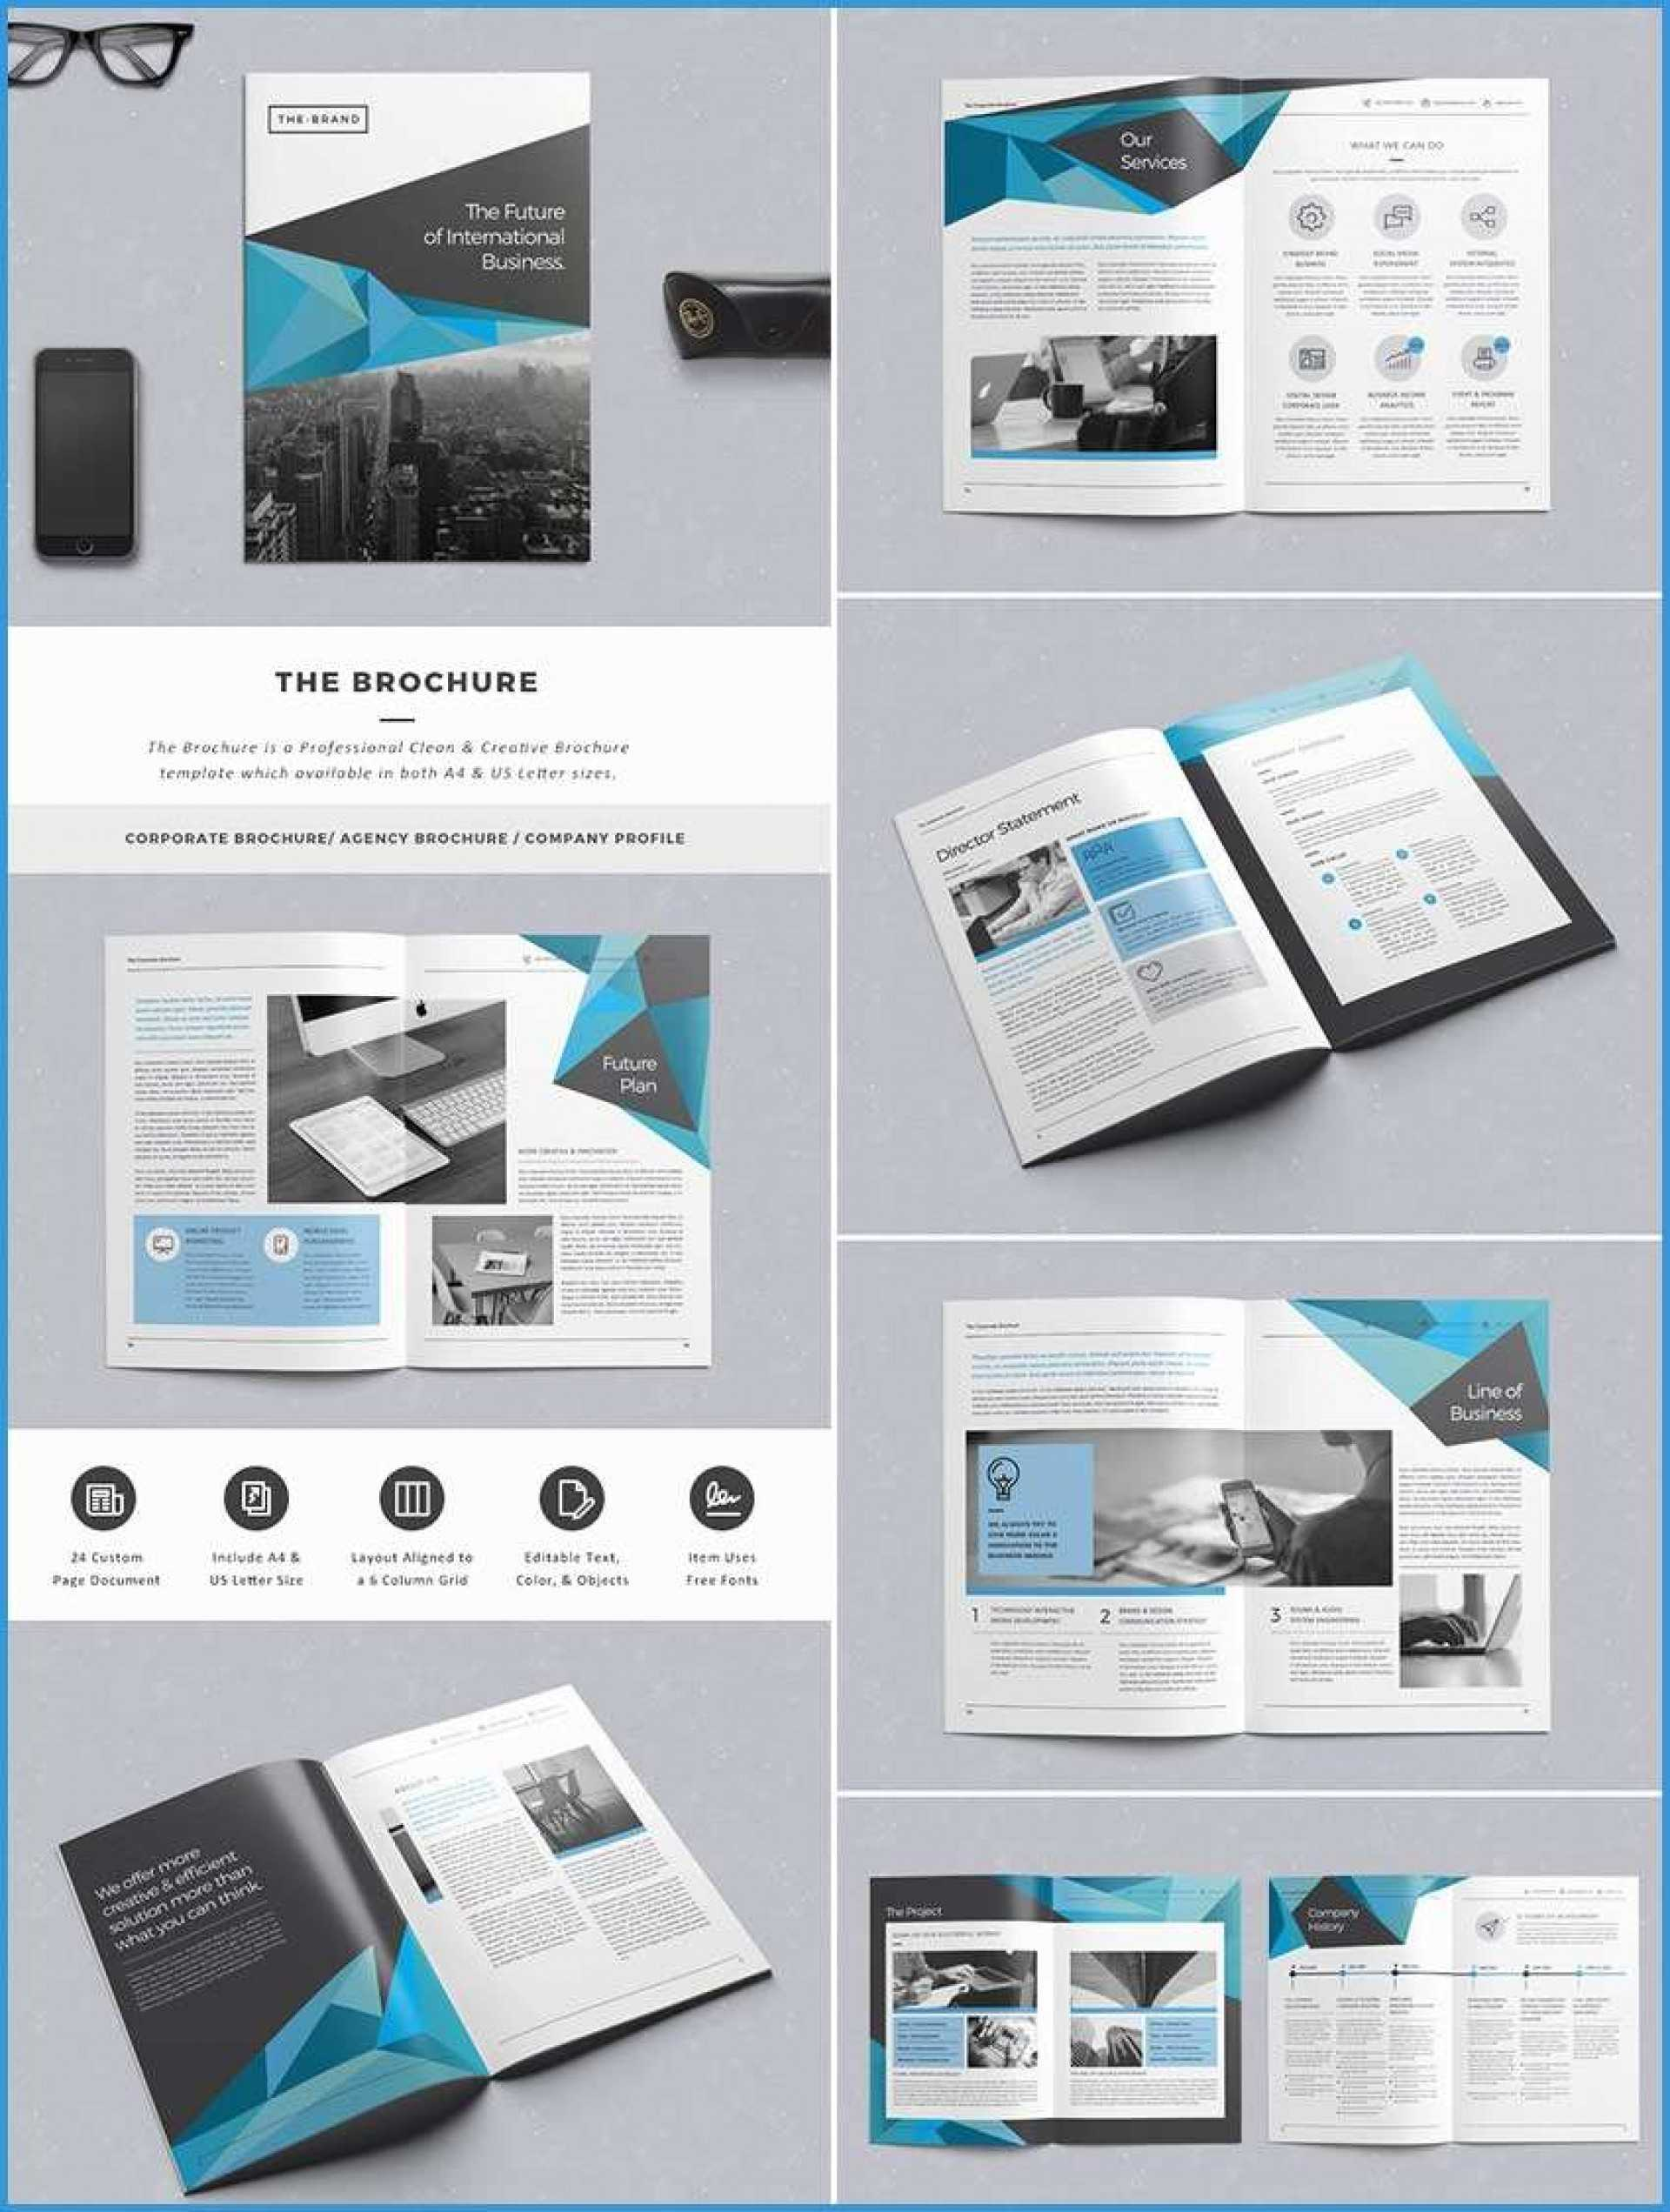 004 Template Ideas Free Indesign Templates Stupendous Throughout Adobe Indesign Brochure Templates